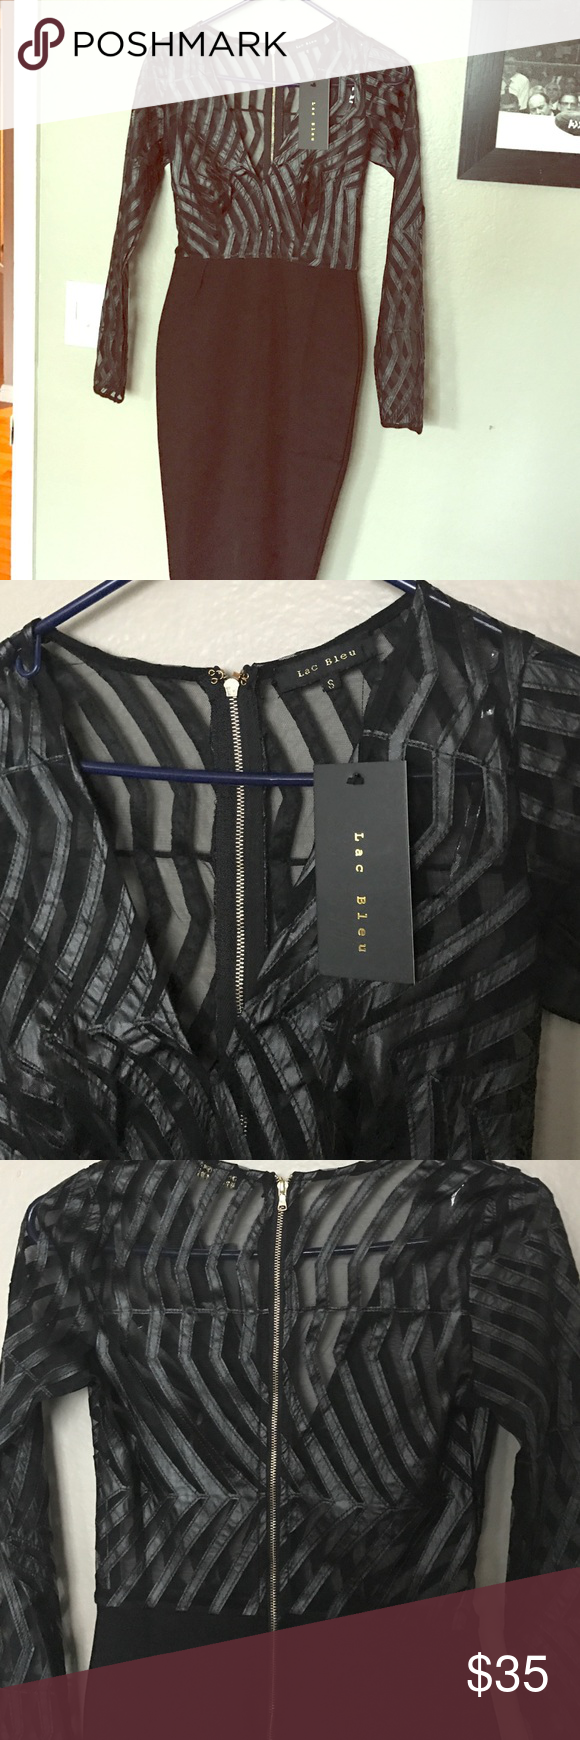 Sexy little black dress😘 Brand new sexy black dress purchased from Fashion Nova.  This dress will turn heads for sure!  Bottom is made of a spandex material, top is sheer with faux leather detailing.  Gold zipper in the back that makes it easy to get on and off.  Bought for Vegas but it didn't make the cut.  Originally purchased for $40.  Please make me a reasonable offer.  Thanks for looking😎 Lac Bleu Dresses Midi